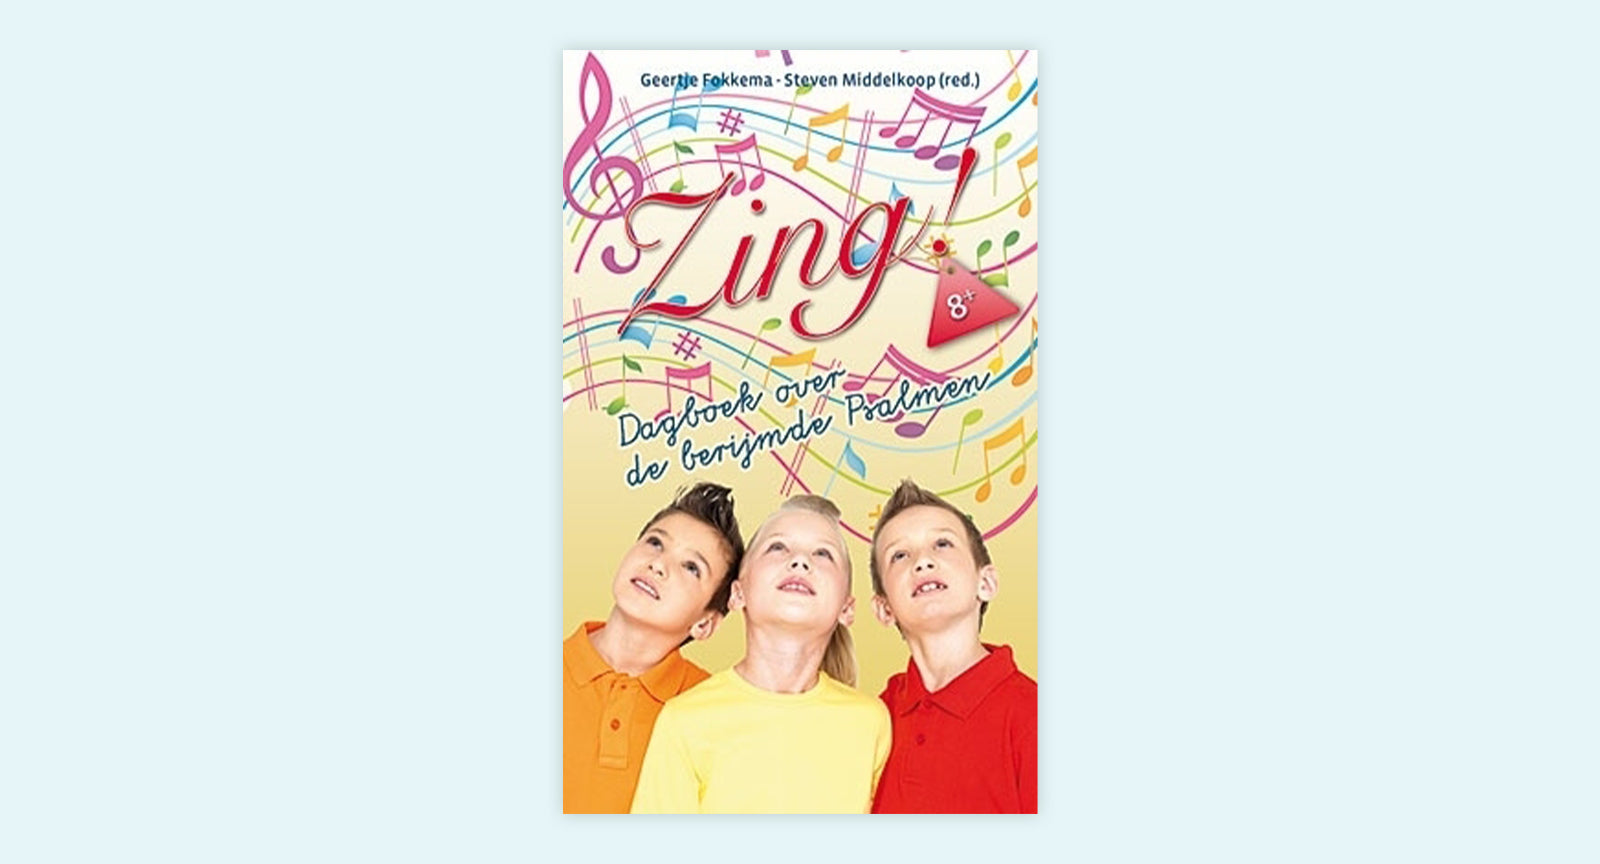 Zing! - Dagboek over de berijmde Psalmen  (8+)